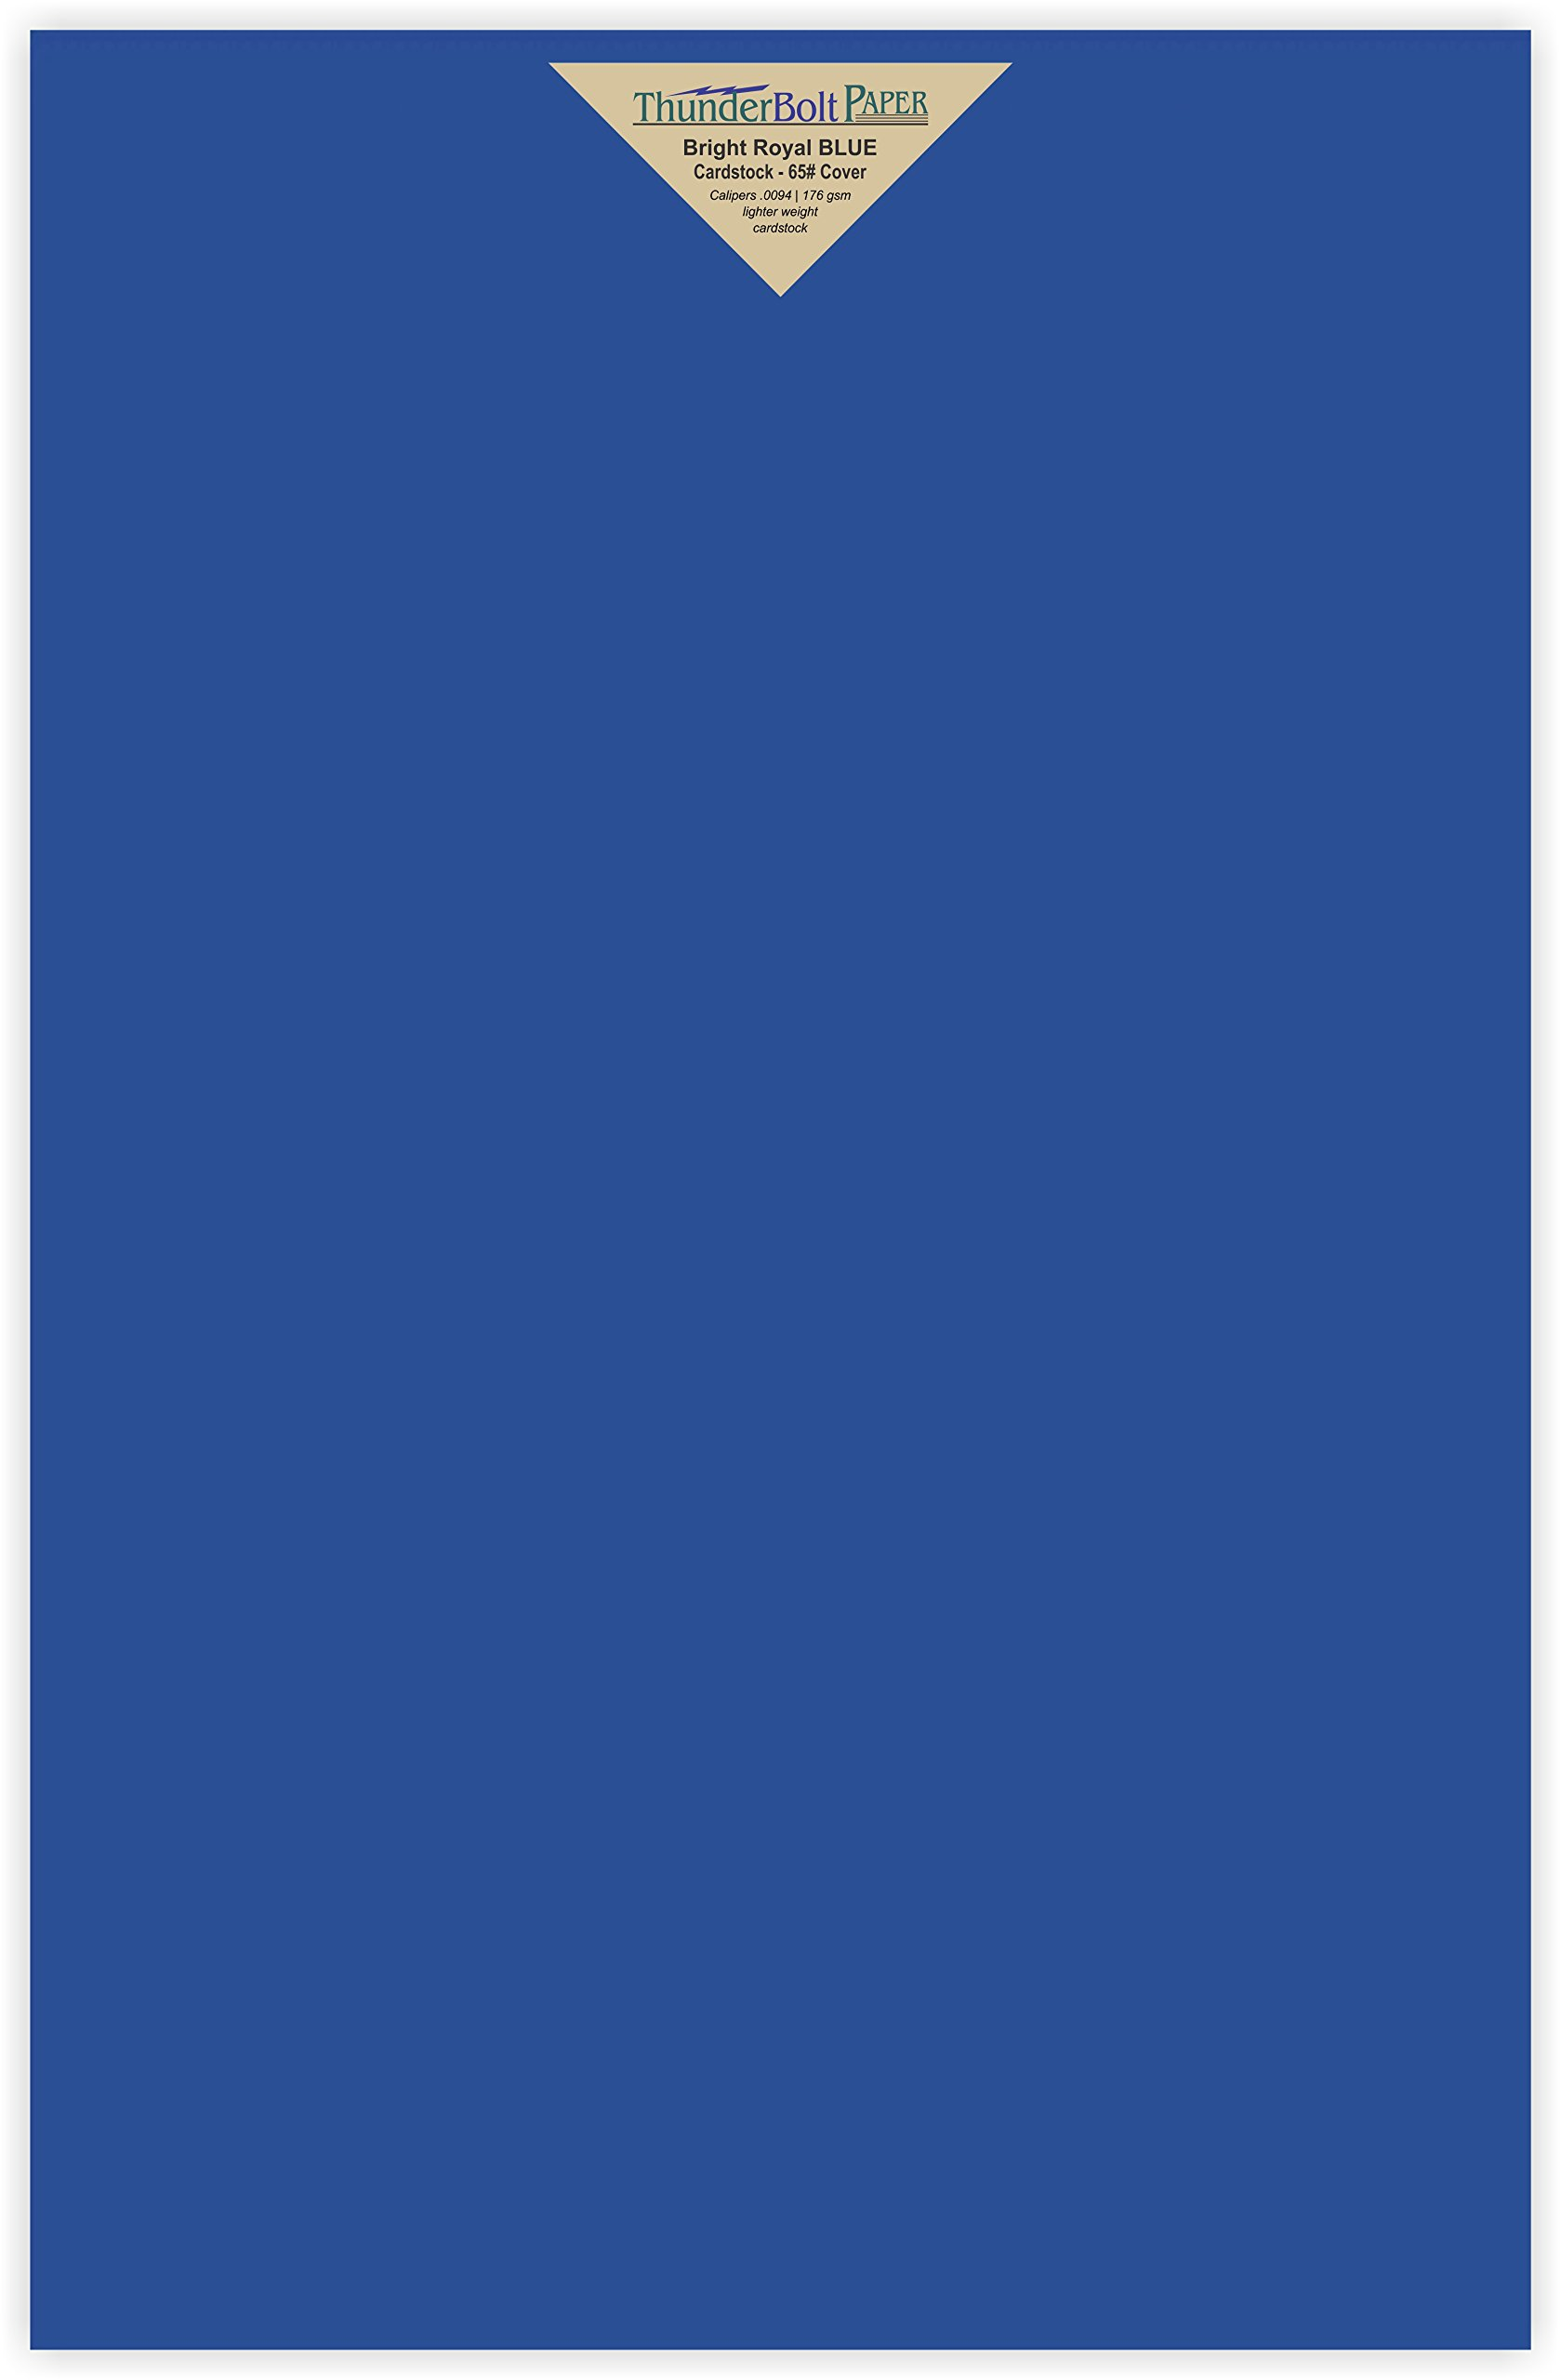 25 Bright Royal Blue Color 65# Cover/Card Paper Sheets 11 X 17 Inches Colored Sheets Tabloid or Ledger Size - 65 lb/pound Light Weight Cardstock - Quality Smooth Paper Surface